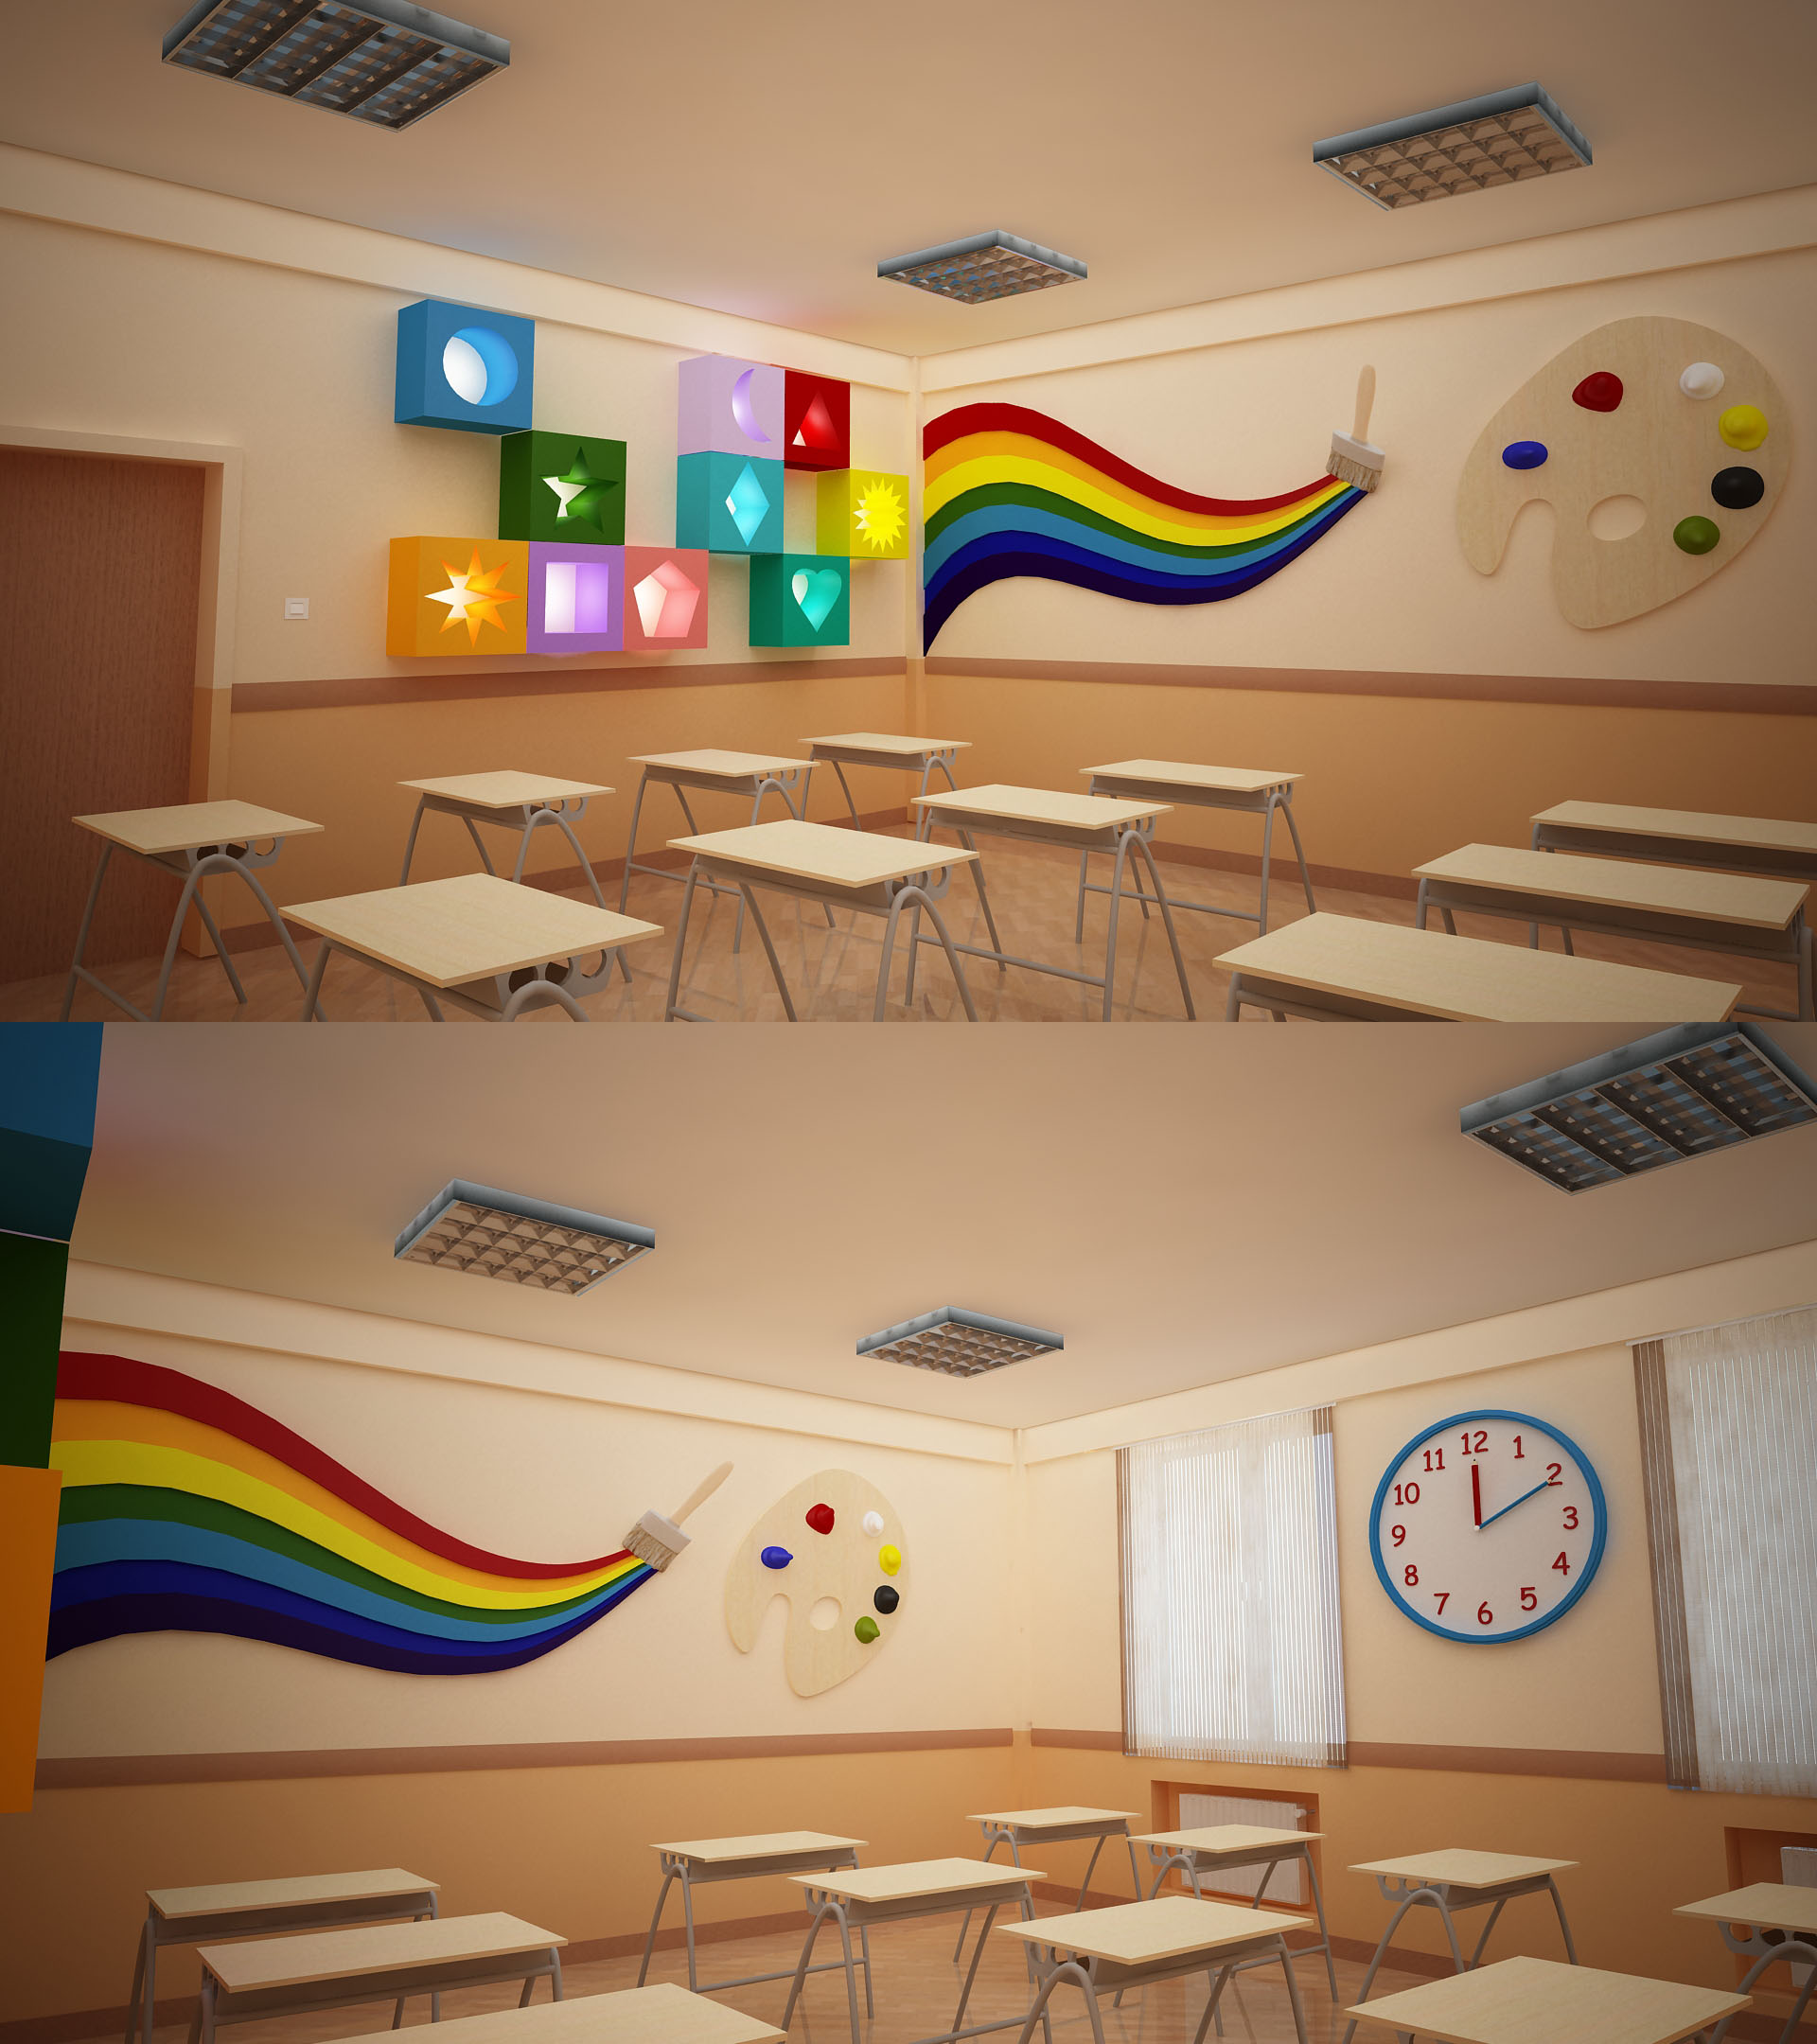 Room Design Classroom ~ Bms baku modern school primary classroom design by